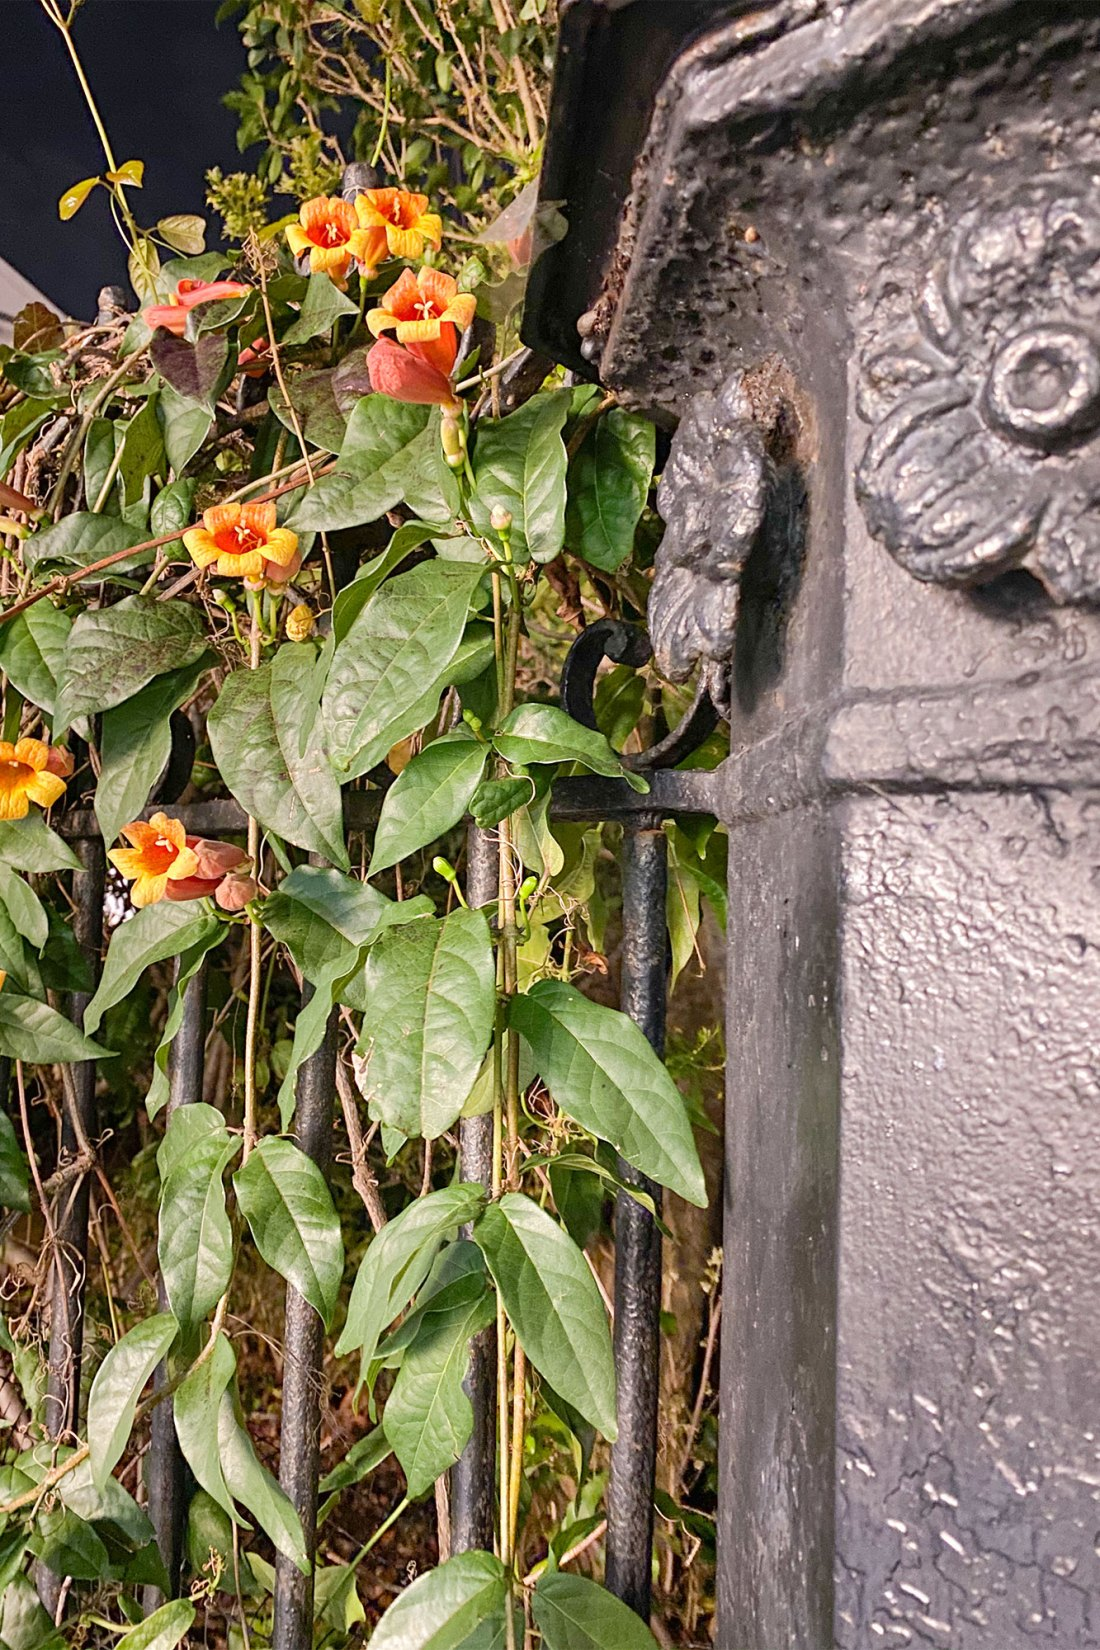 Orange flowers next to ornate fence pole